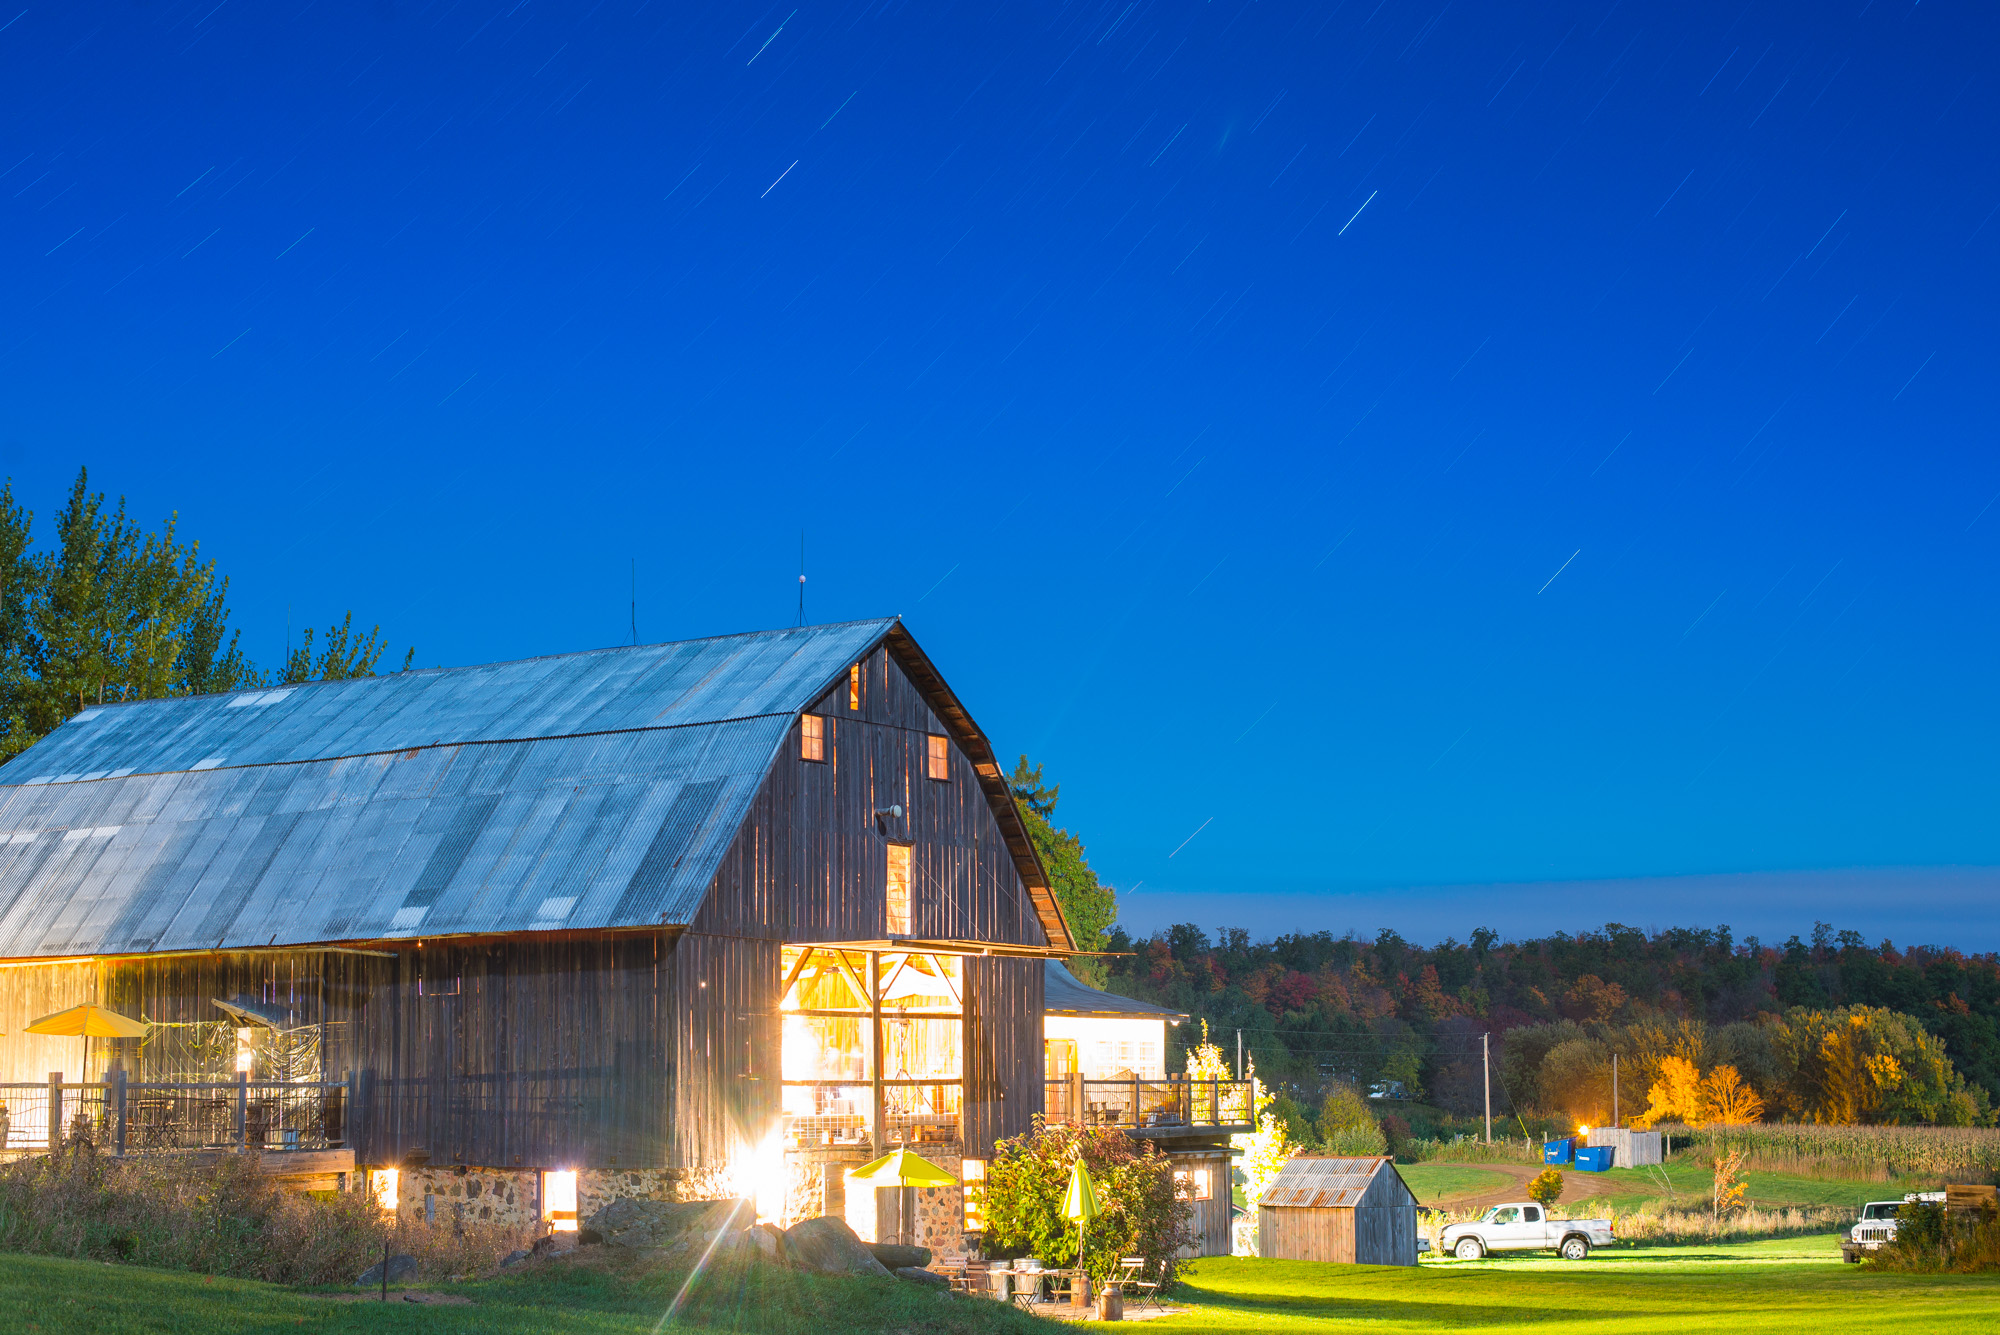 The Enchanted Barn - Chetek, WI